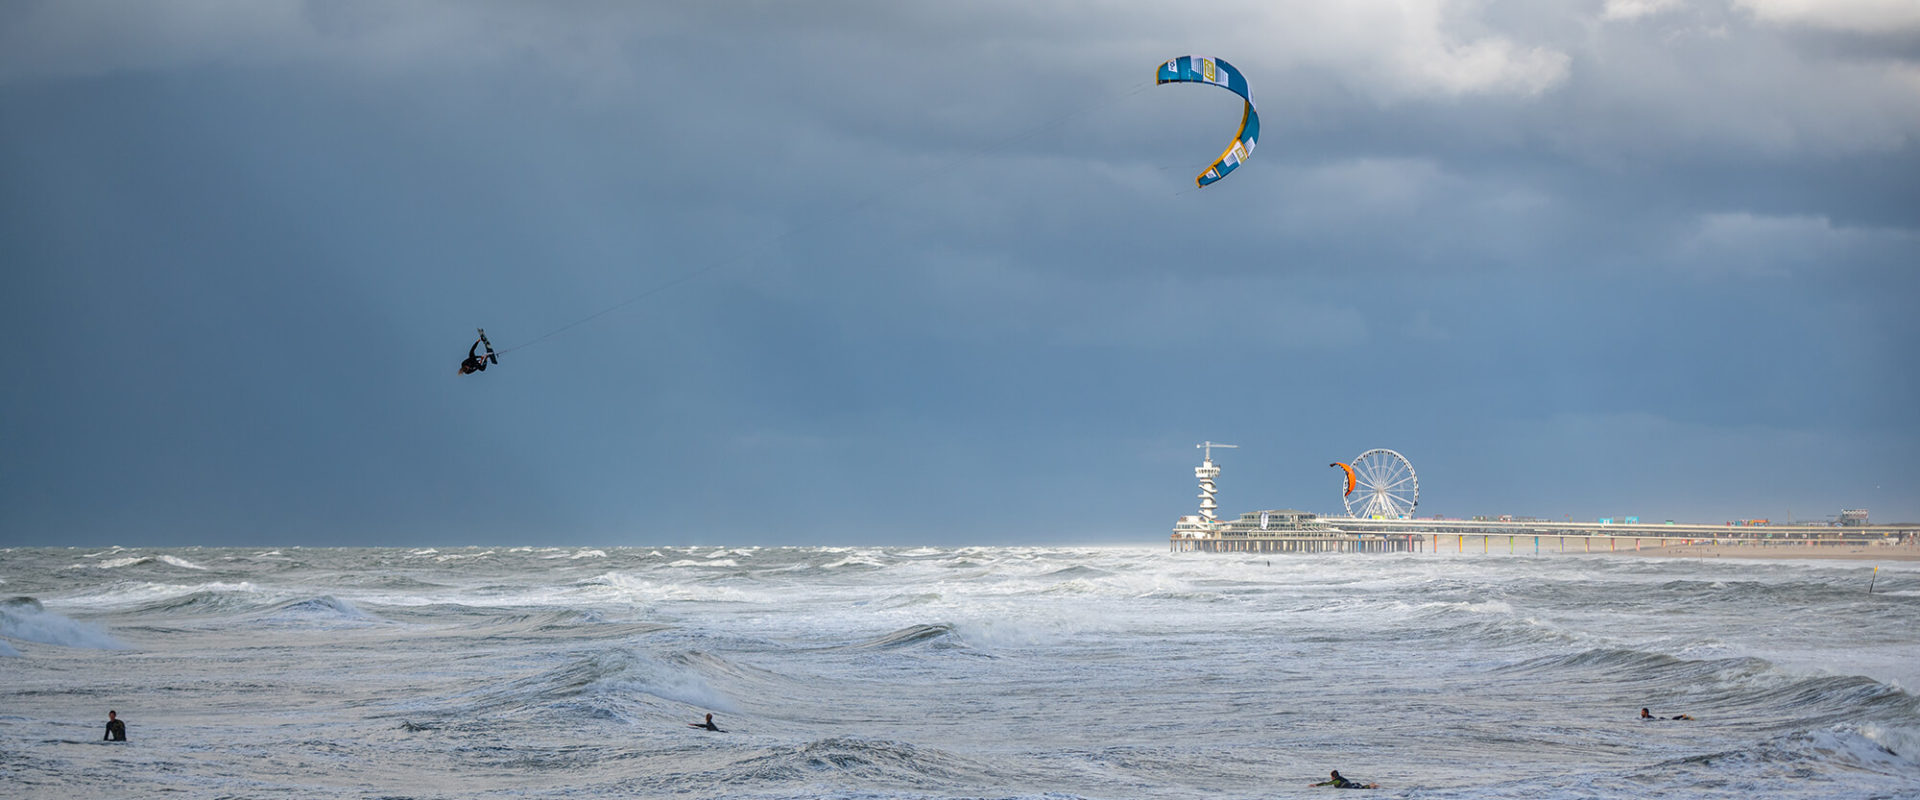 Ocean Rodeo Rise Zout Fotografie HIGH RES 66 1920x800 - Home